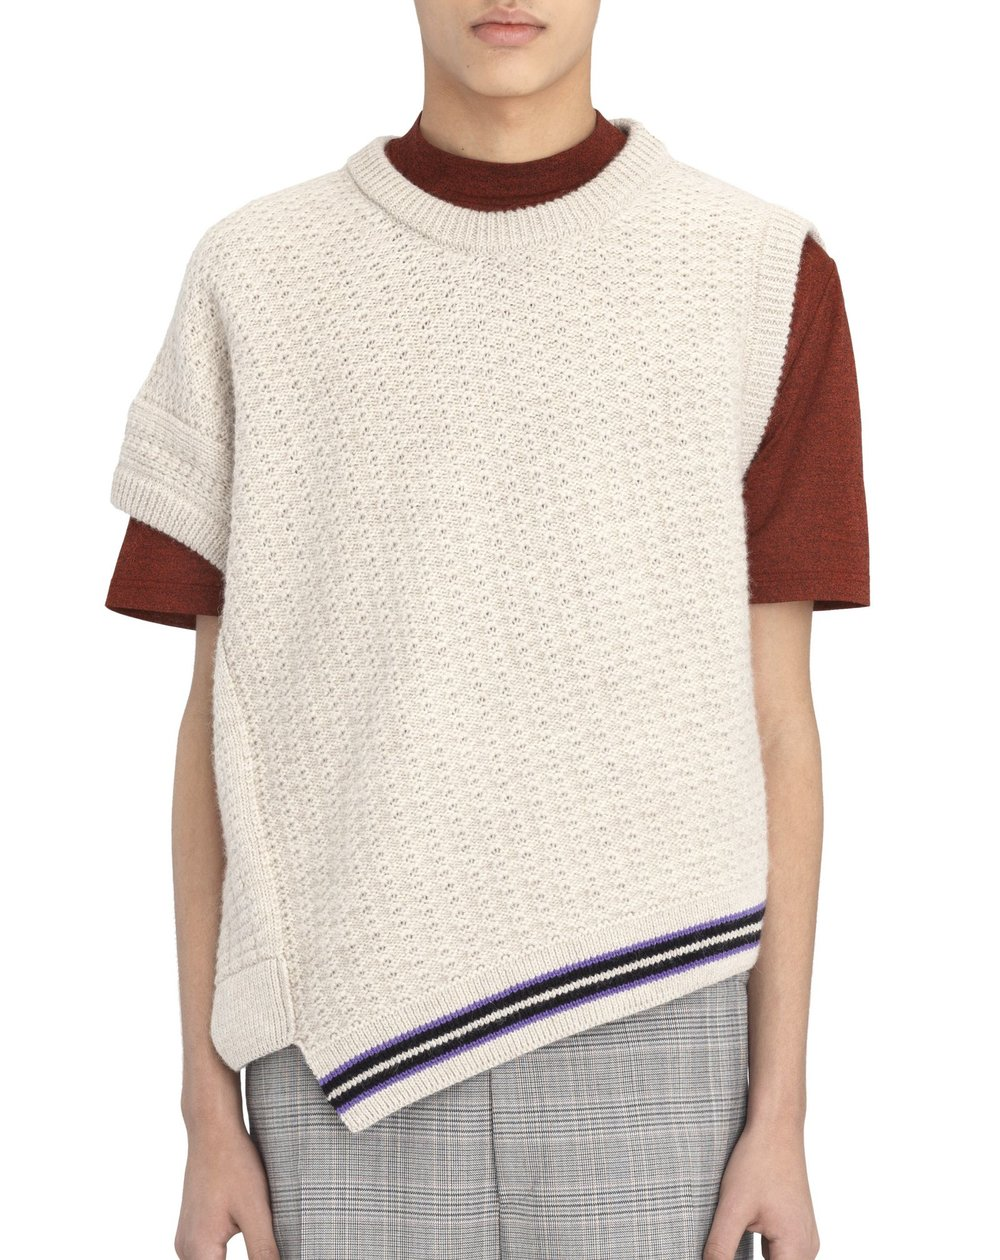 Lanvin asymmetrical sleeveless sweater - £735 - For those days when you can't quite decide whether you want to wear a T-shirt or a sweater